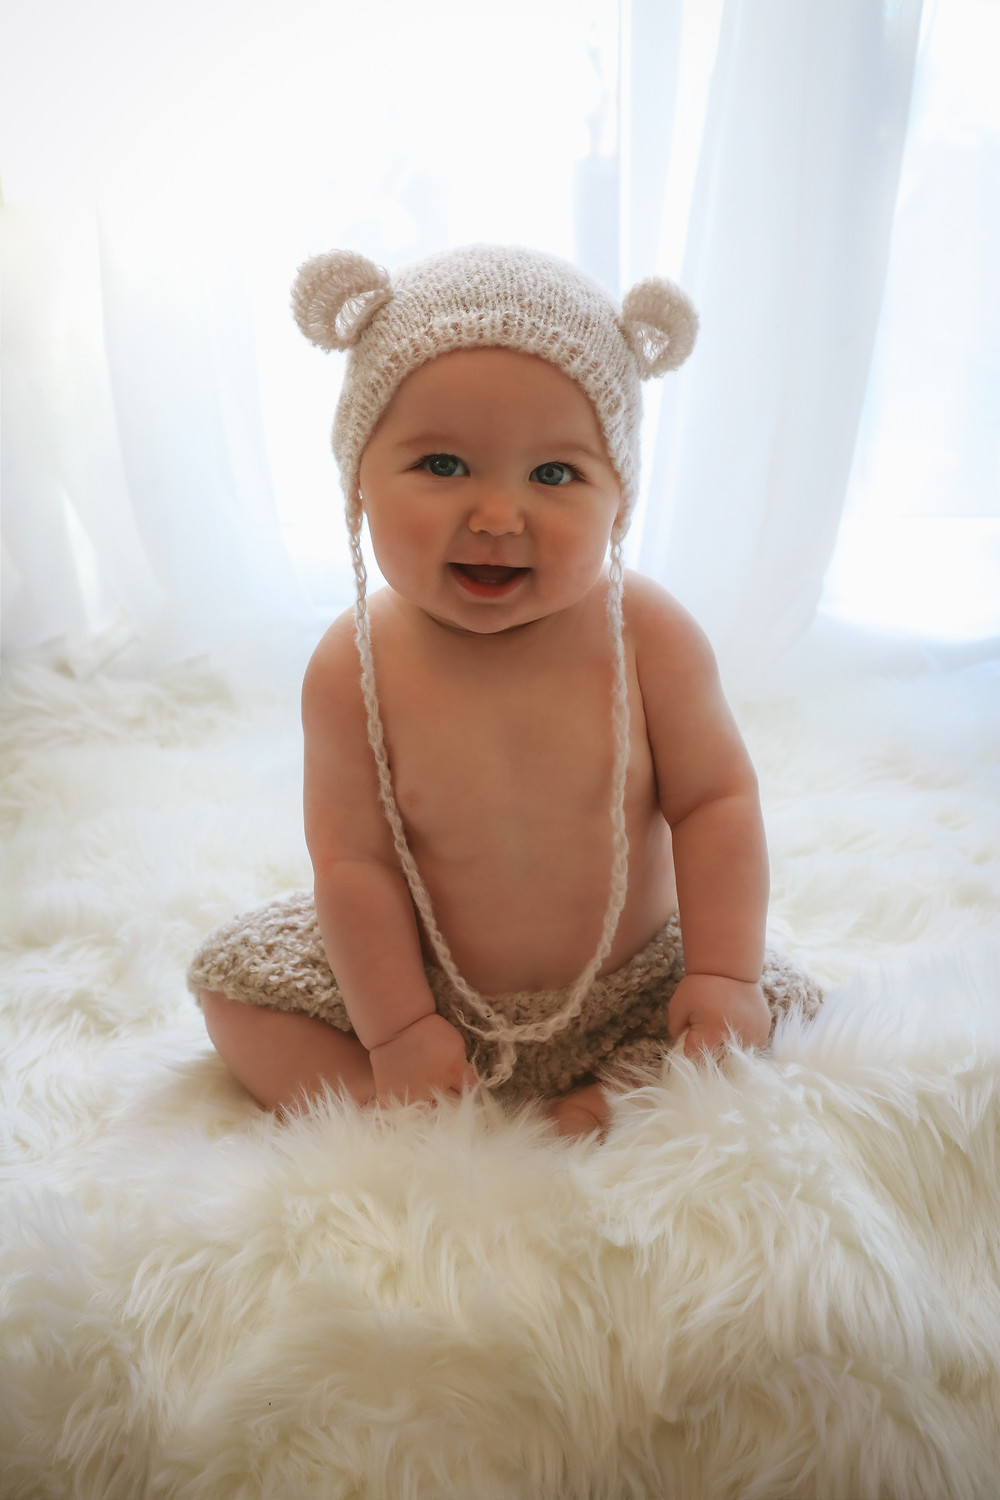 chunky baby boy sitting up wearing bear bonnet